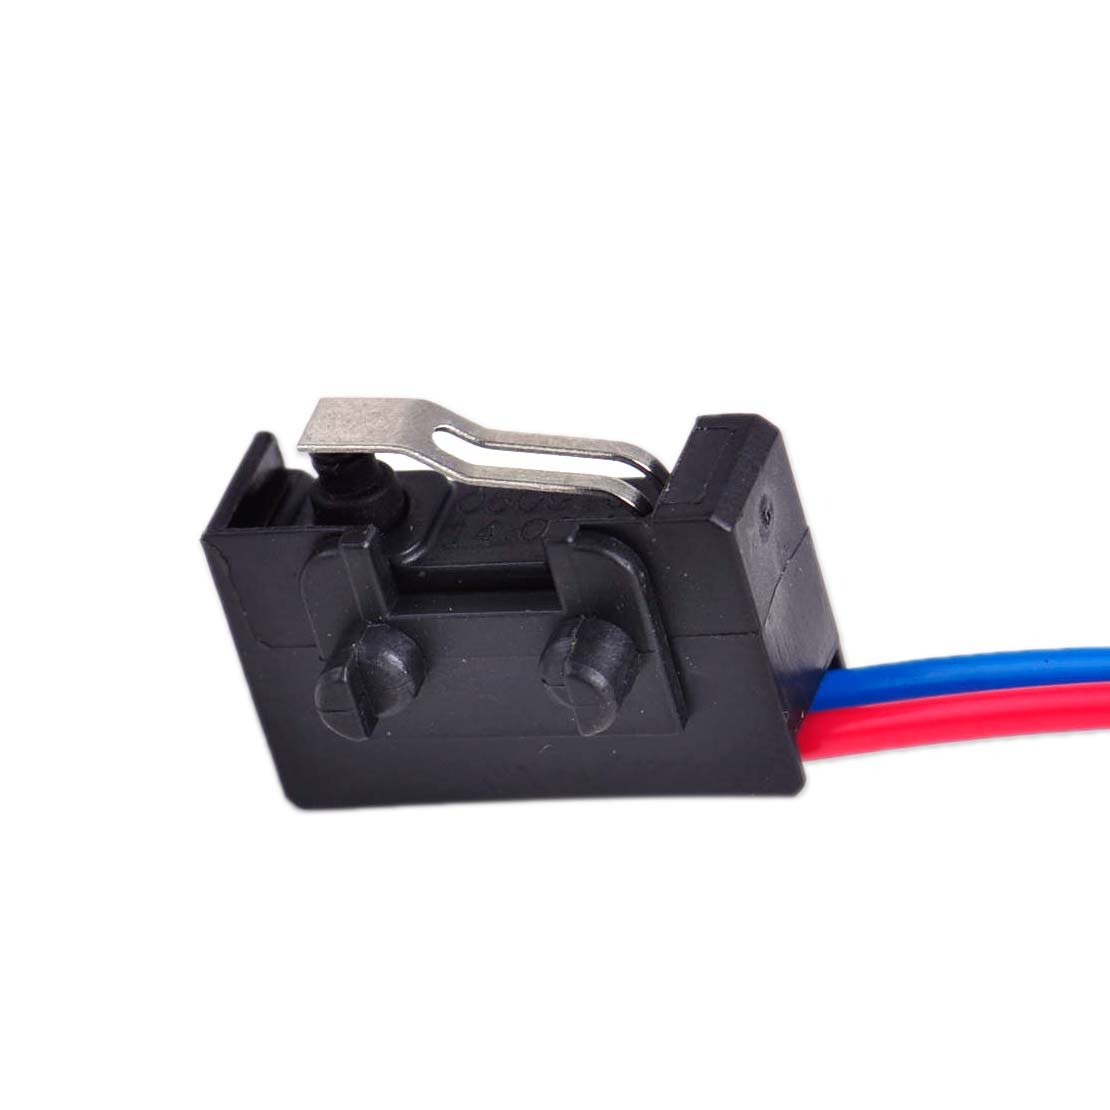 Amazon.com: beler Car Left Front Door Lock Micro Switch for VW Passat B5 Bora Polo Golf MK4 3BD998785: Automotive